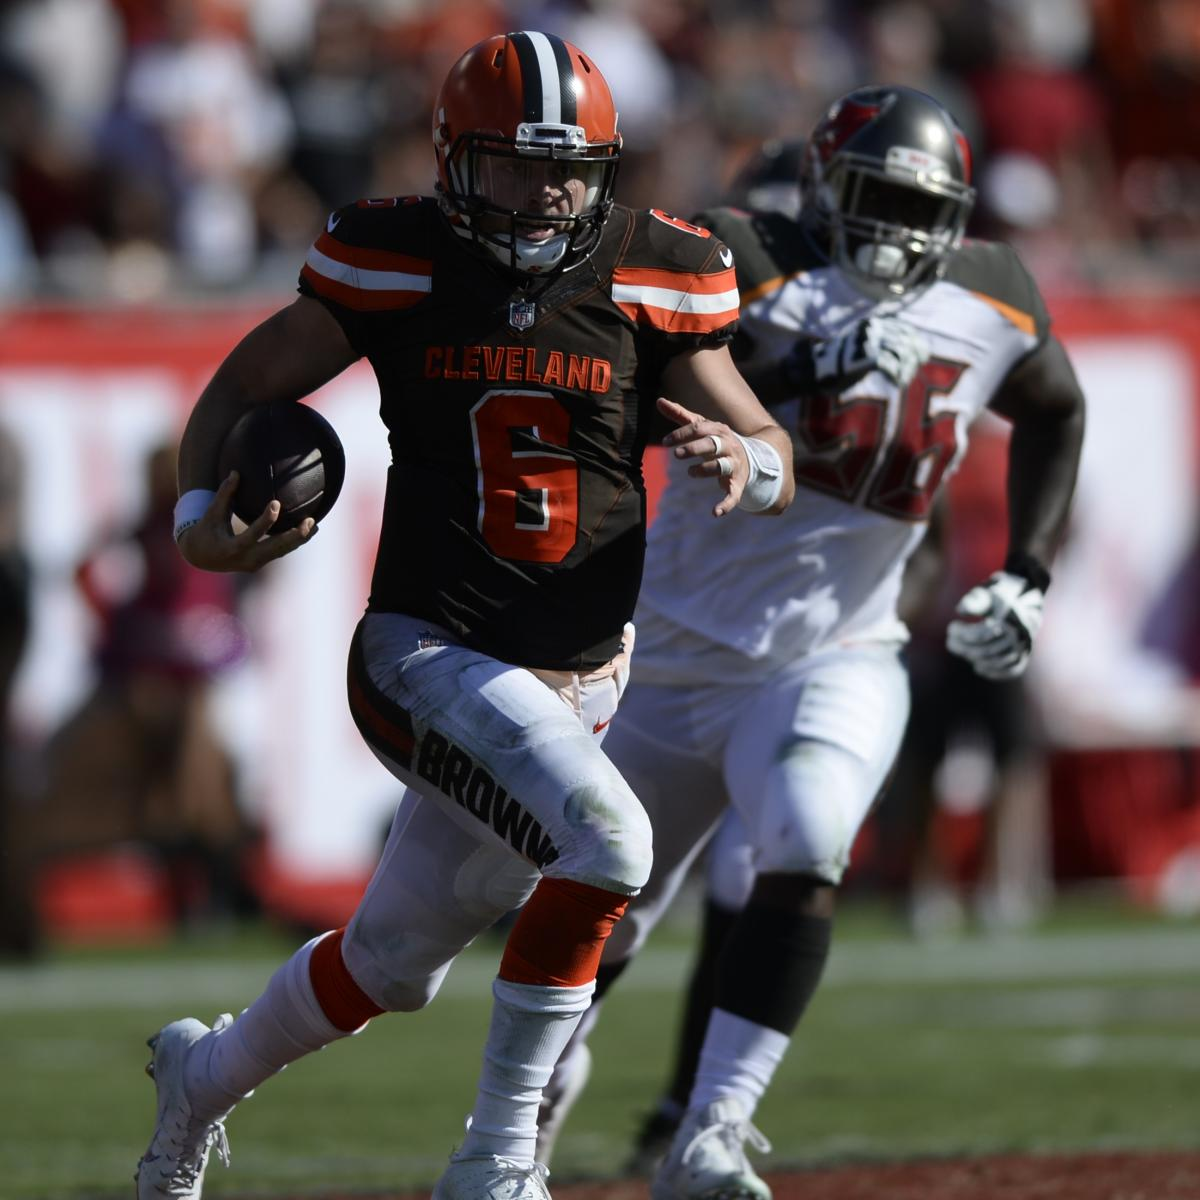 Report: NFL Knows Hit on Baker Mayfield vs. Buccaneers Should Have Drawn Penalty